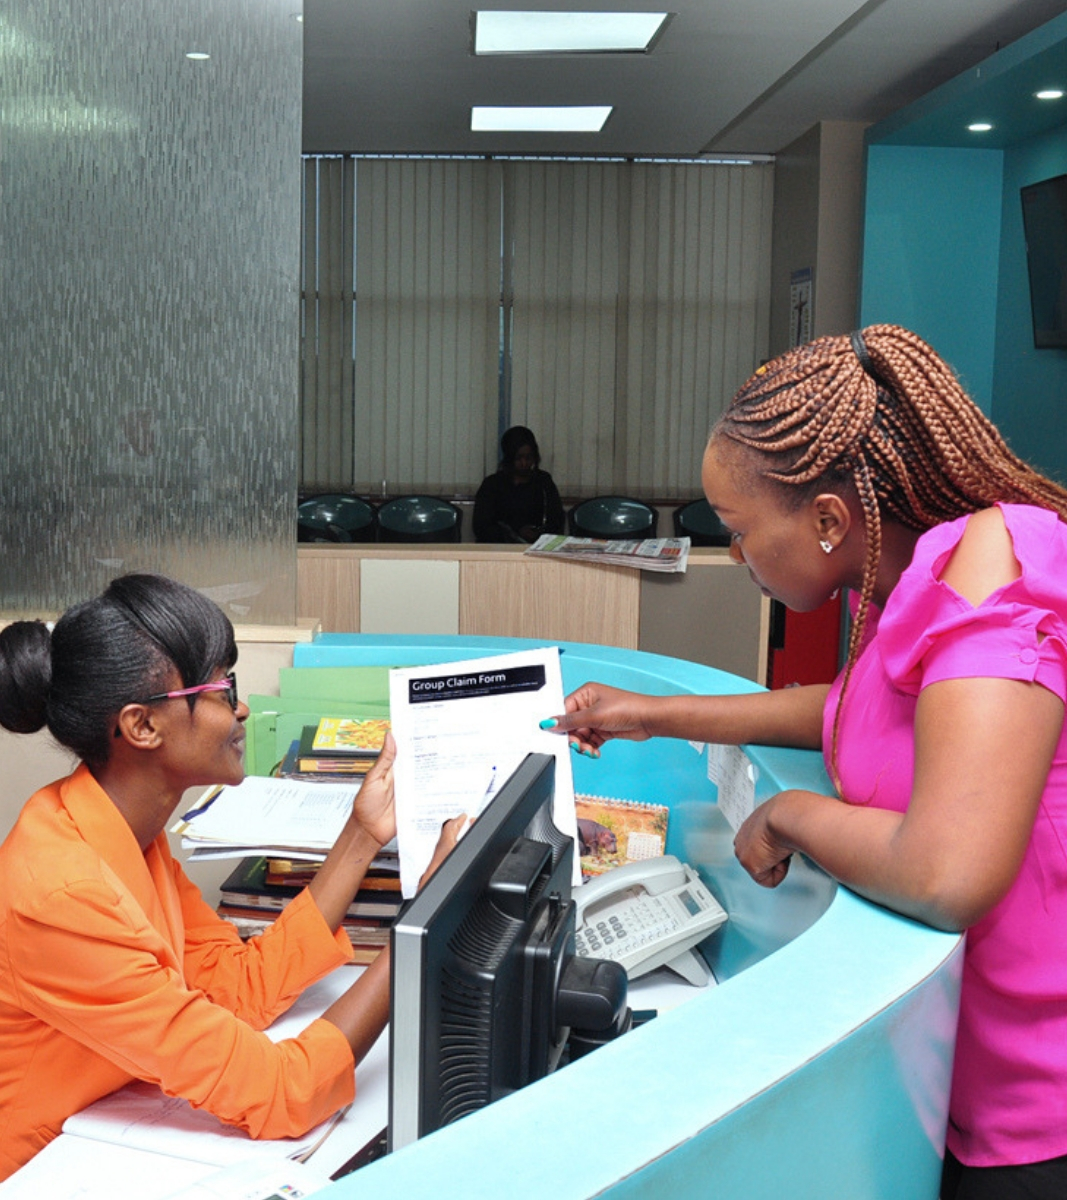 Orthopedic Shop in Kenya - Orthopaedic Services and Products